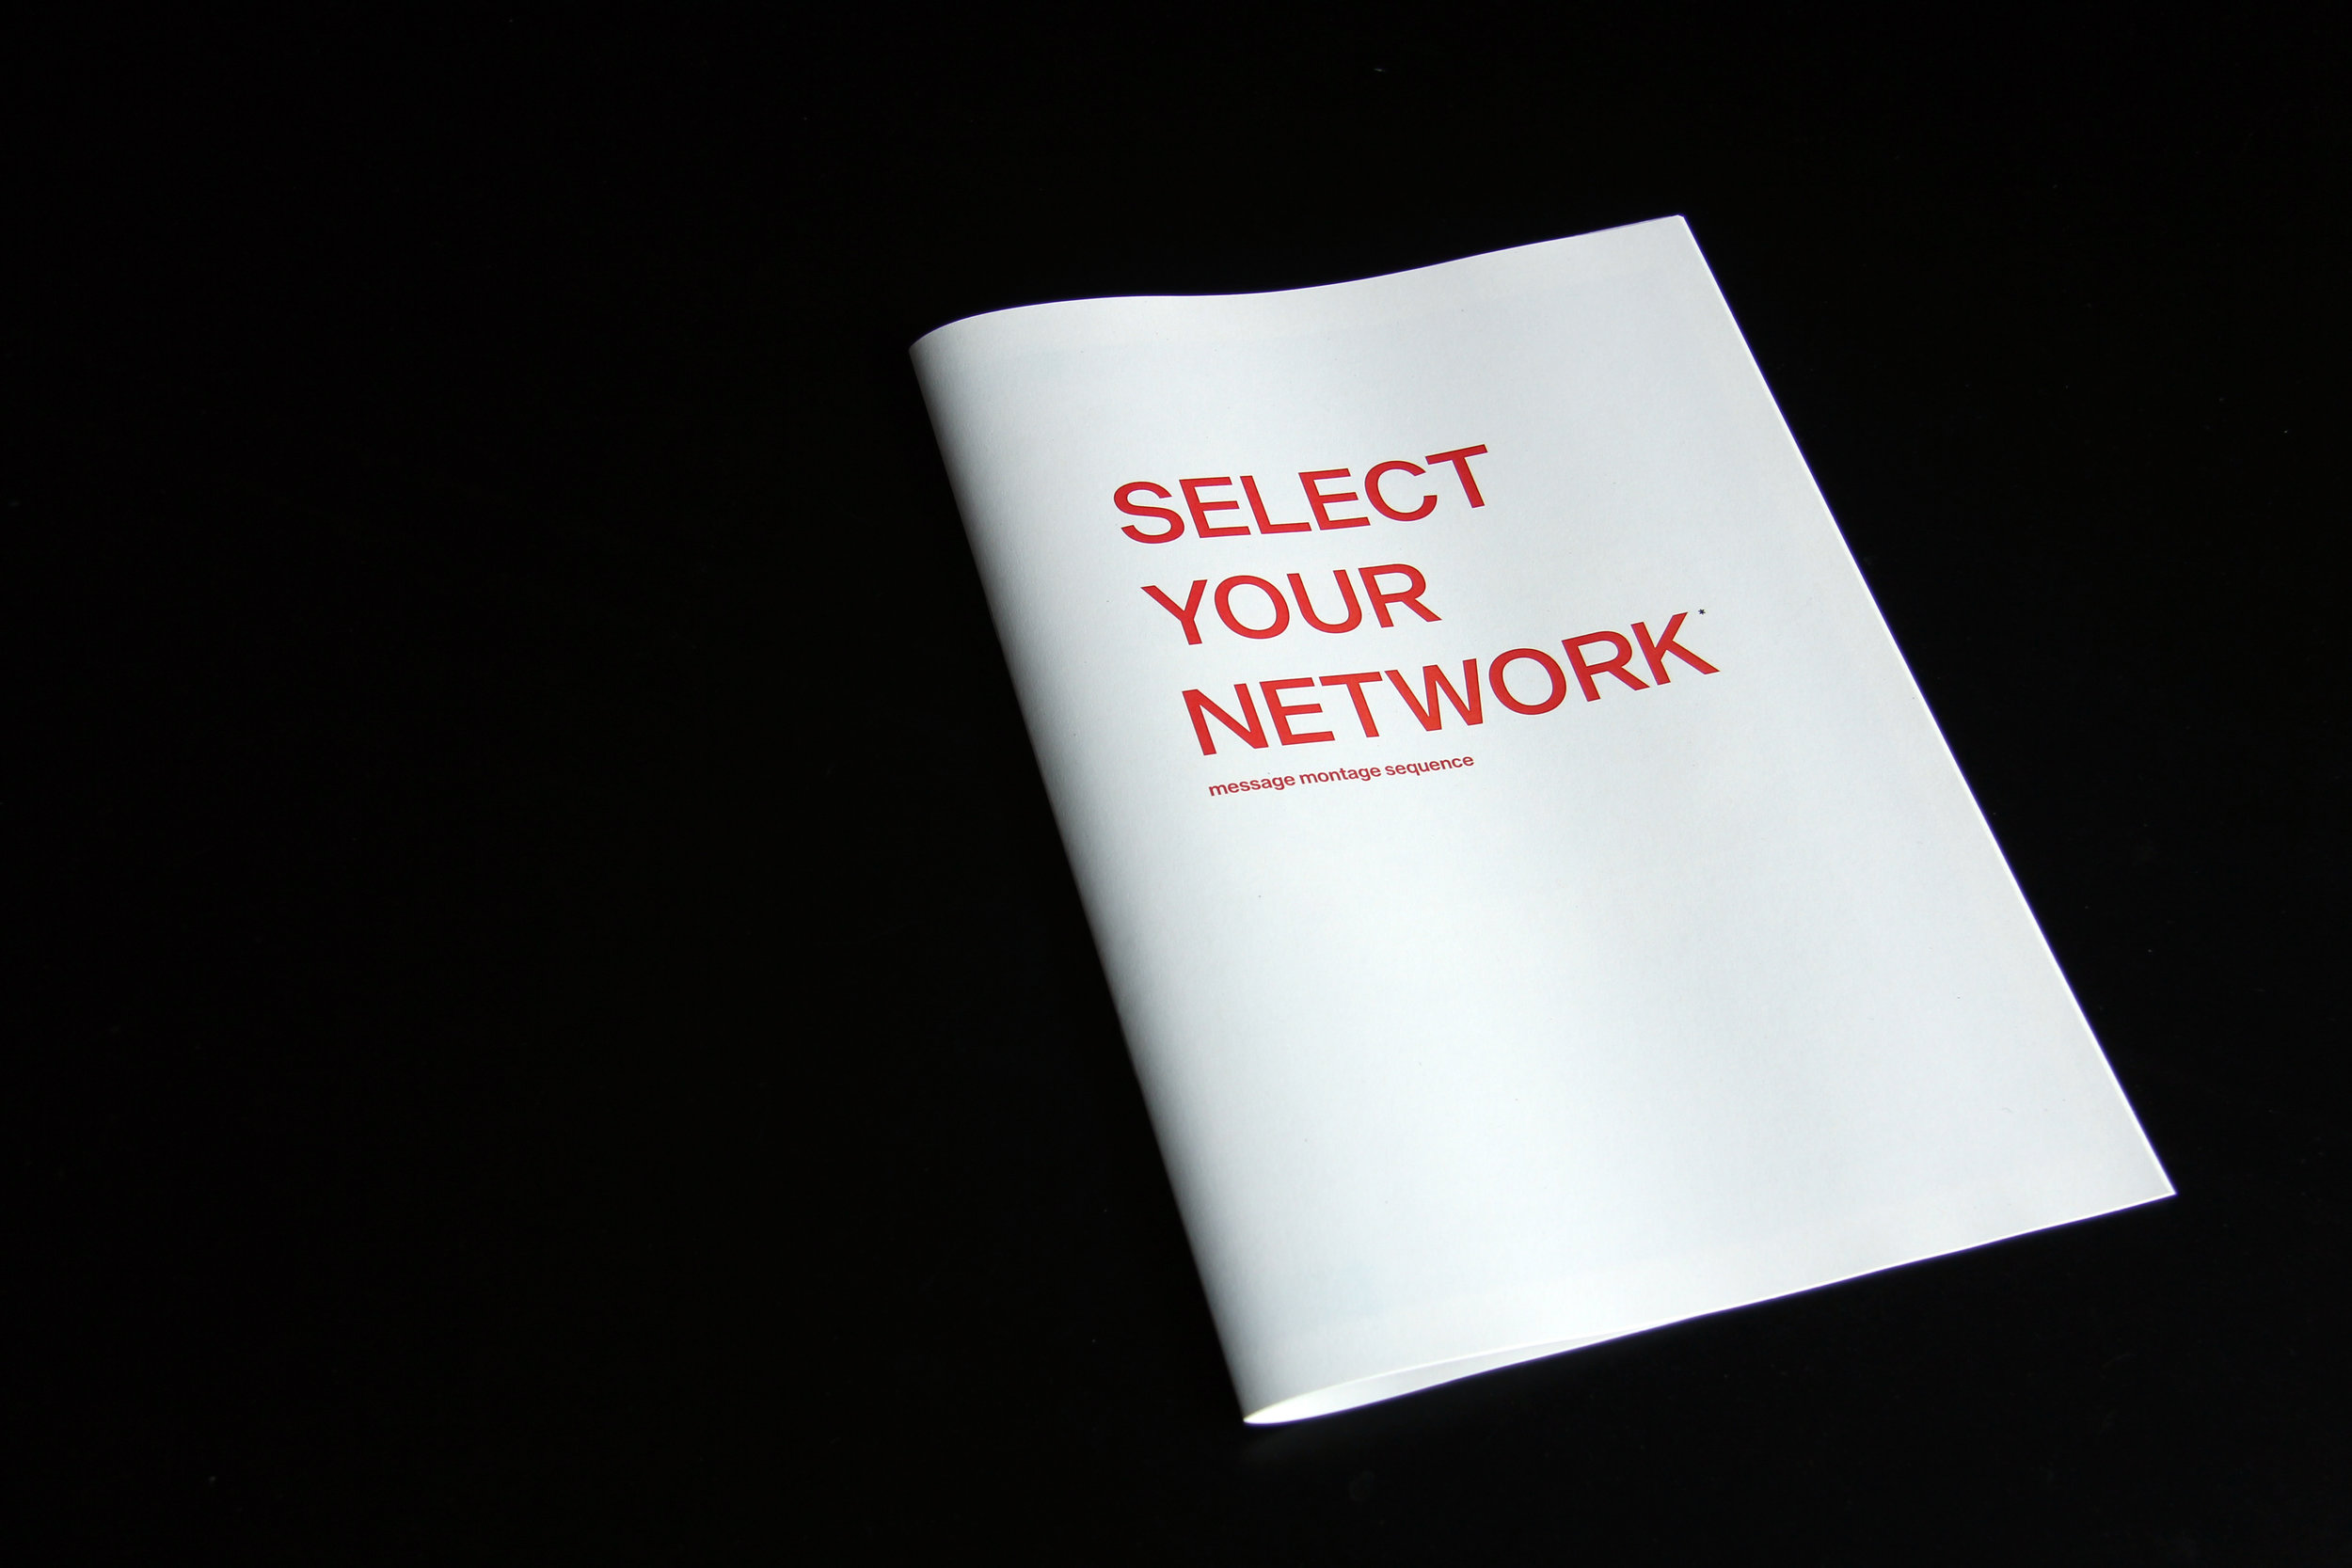 Peter Maybury: SELECT YOUR NETWORK